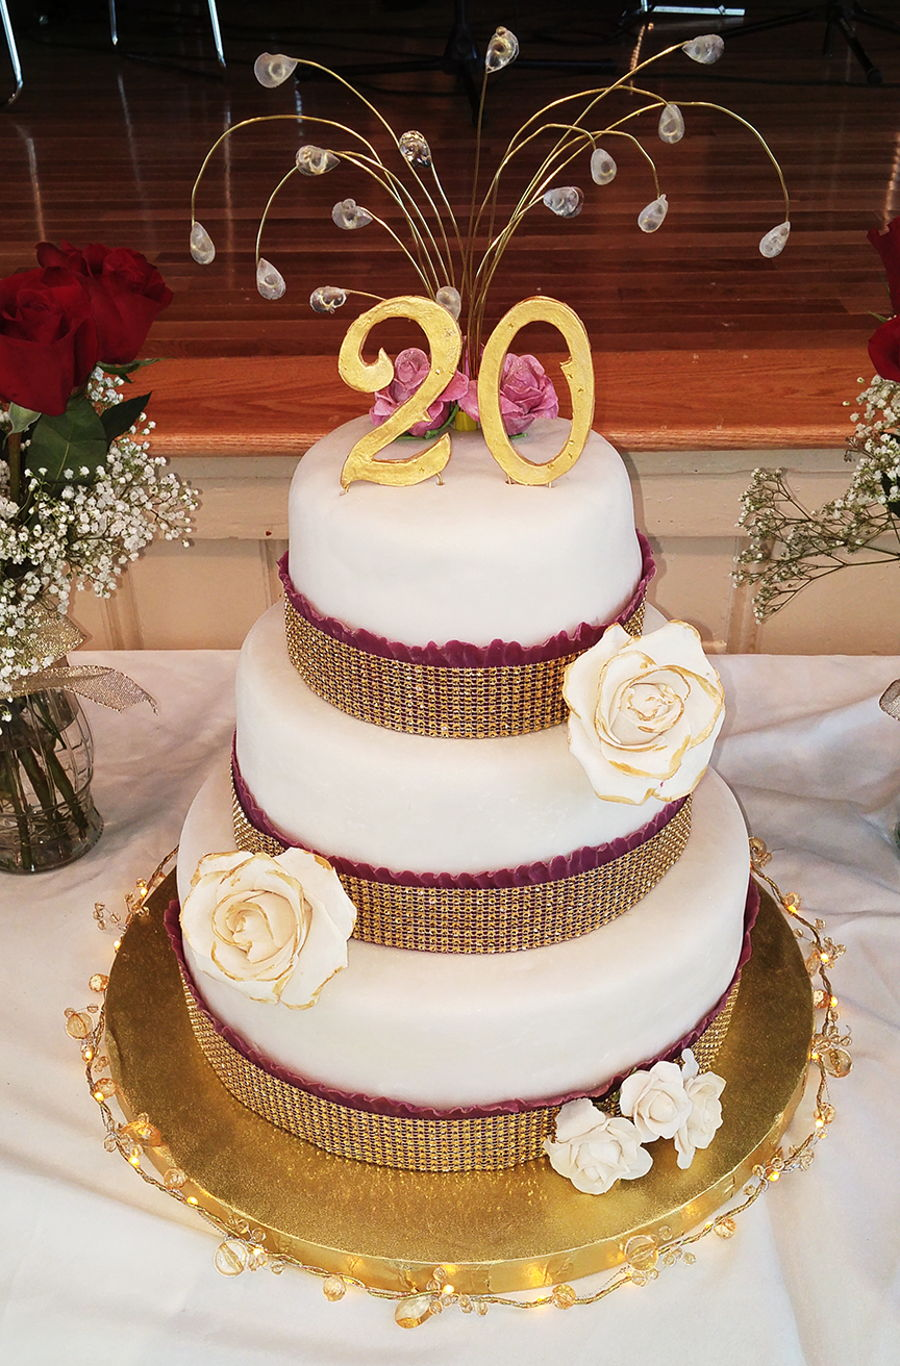 20th wedding anniversary cake - Th anniversary cake decorations ...